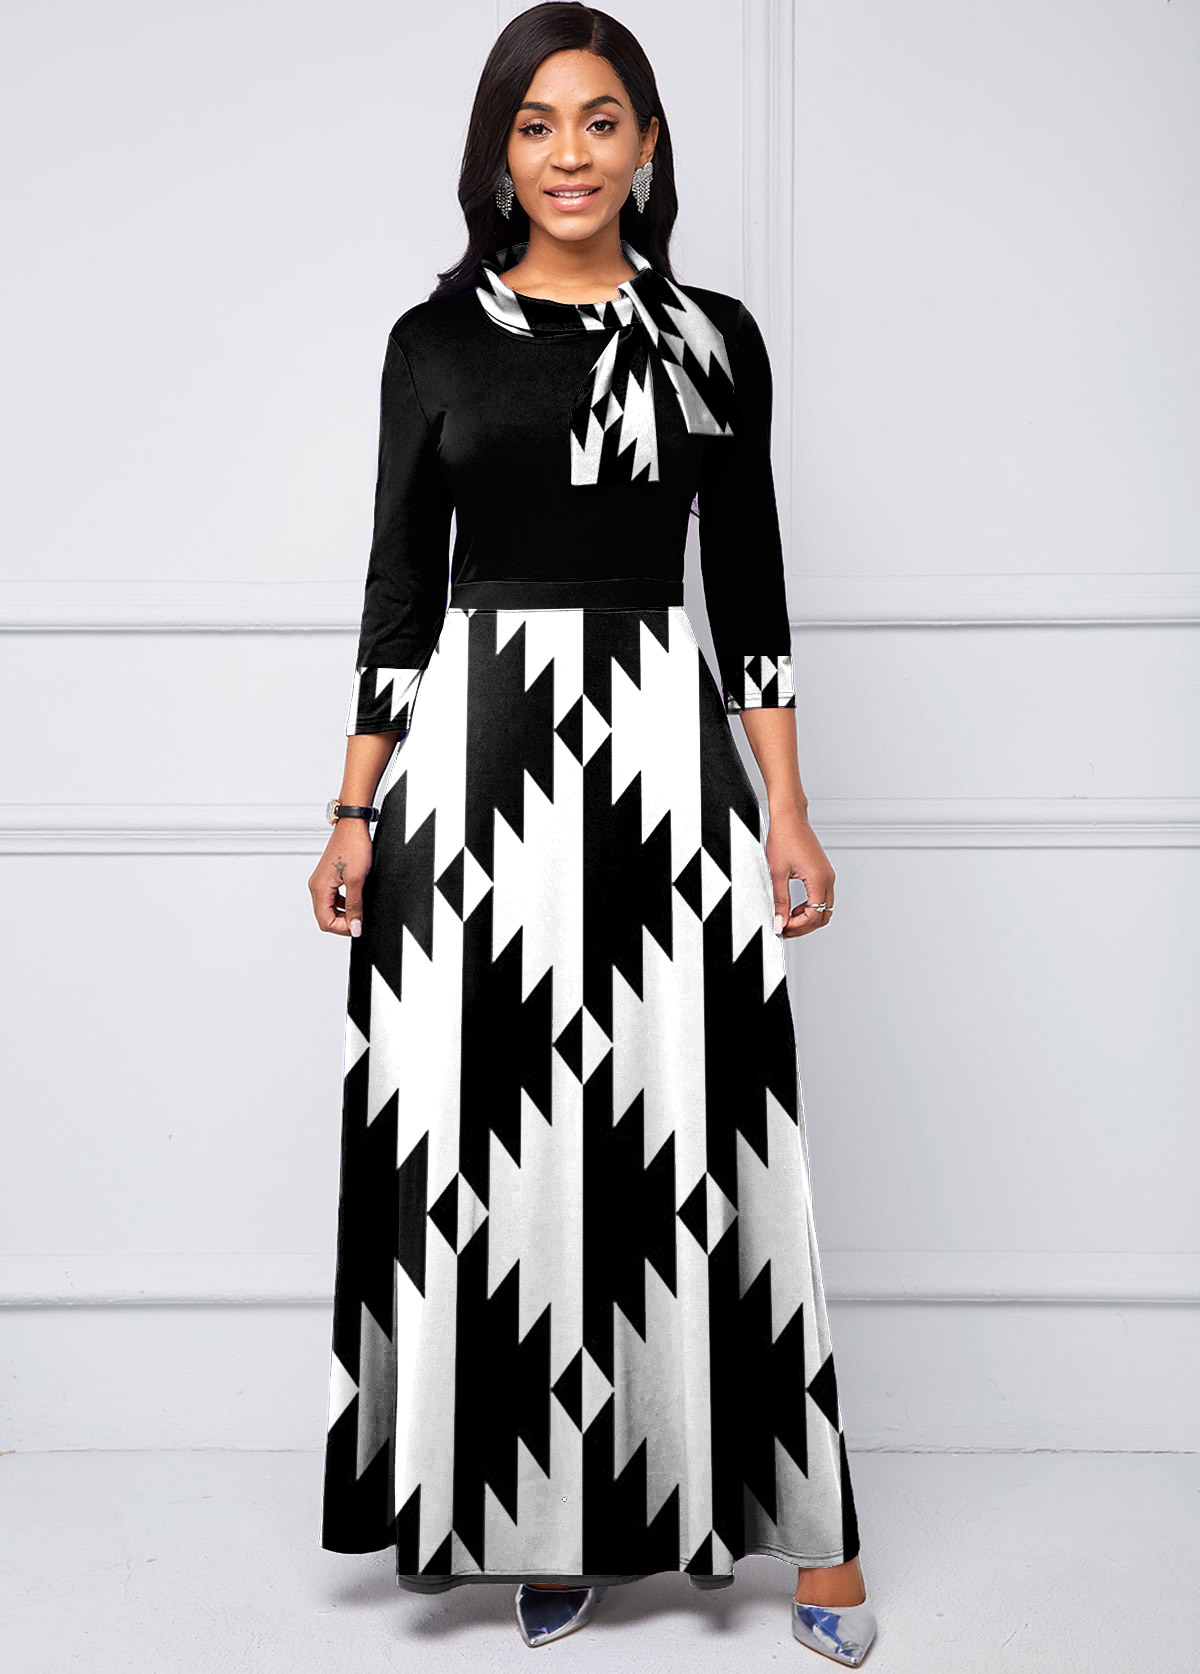 ROTITA Geometric Print 3/4 Sleeve Bowknot Dress